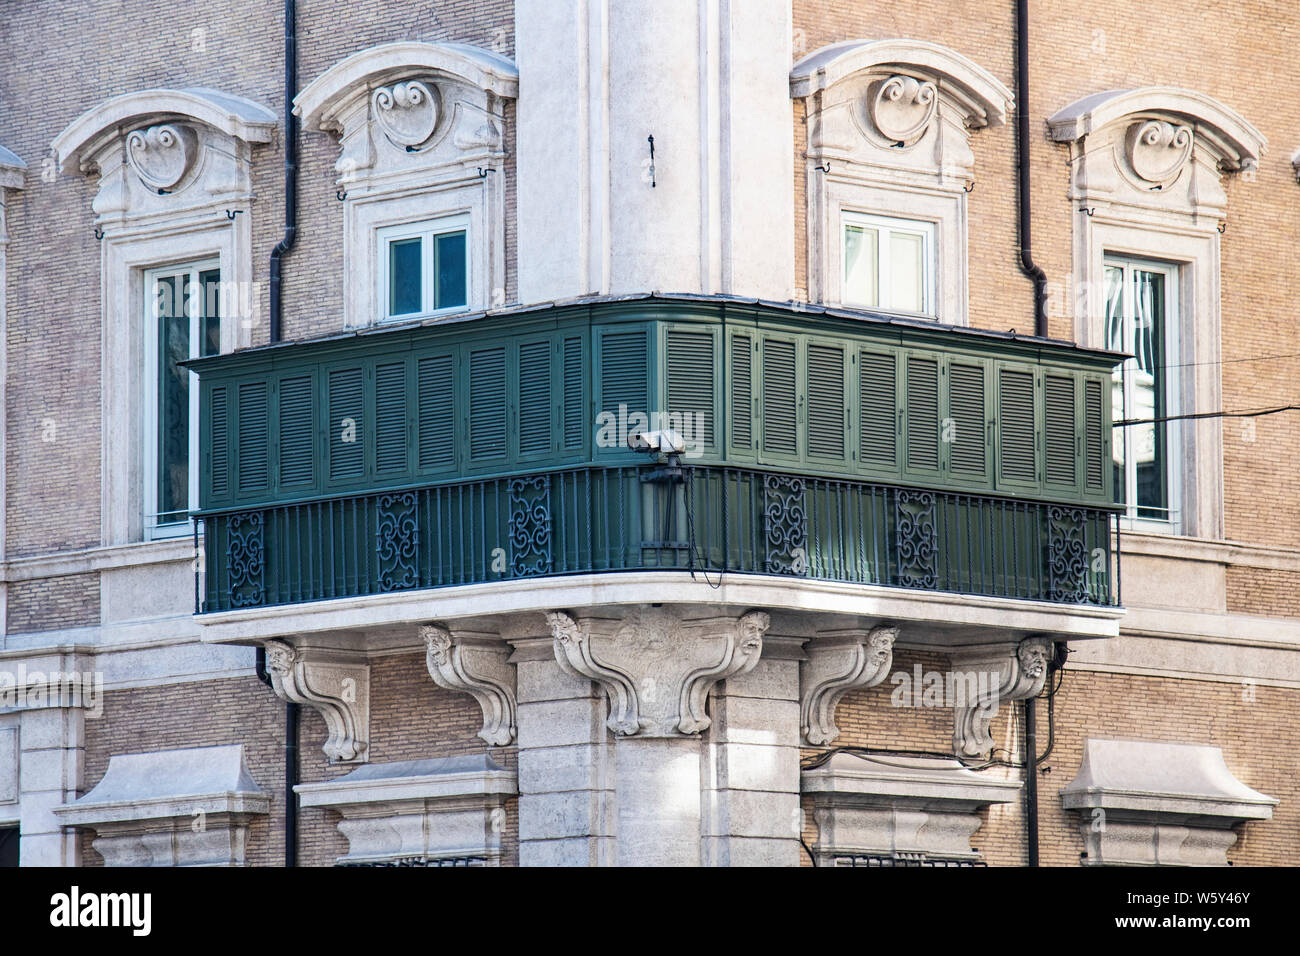 Napoleon Bonaparte's mother, Letizia Bonaparte, had this balcony built at her home in Rome, Italy so that she could watch people below in secret Stock Photo